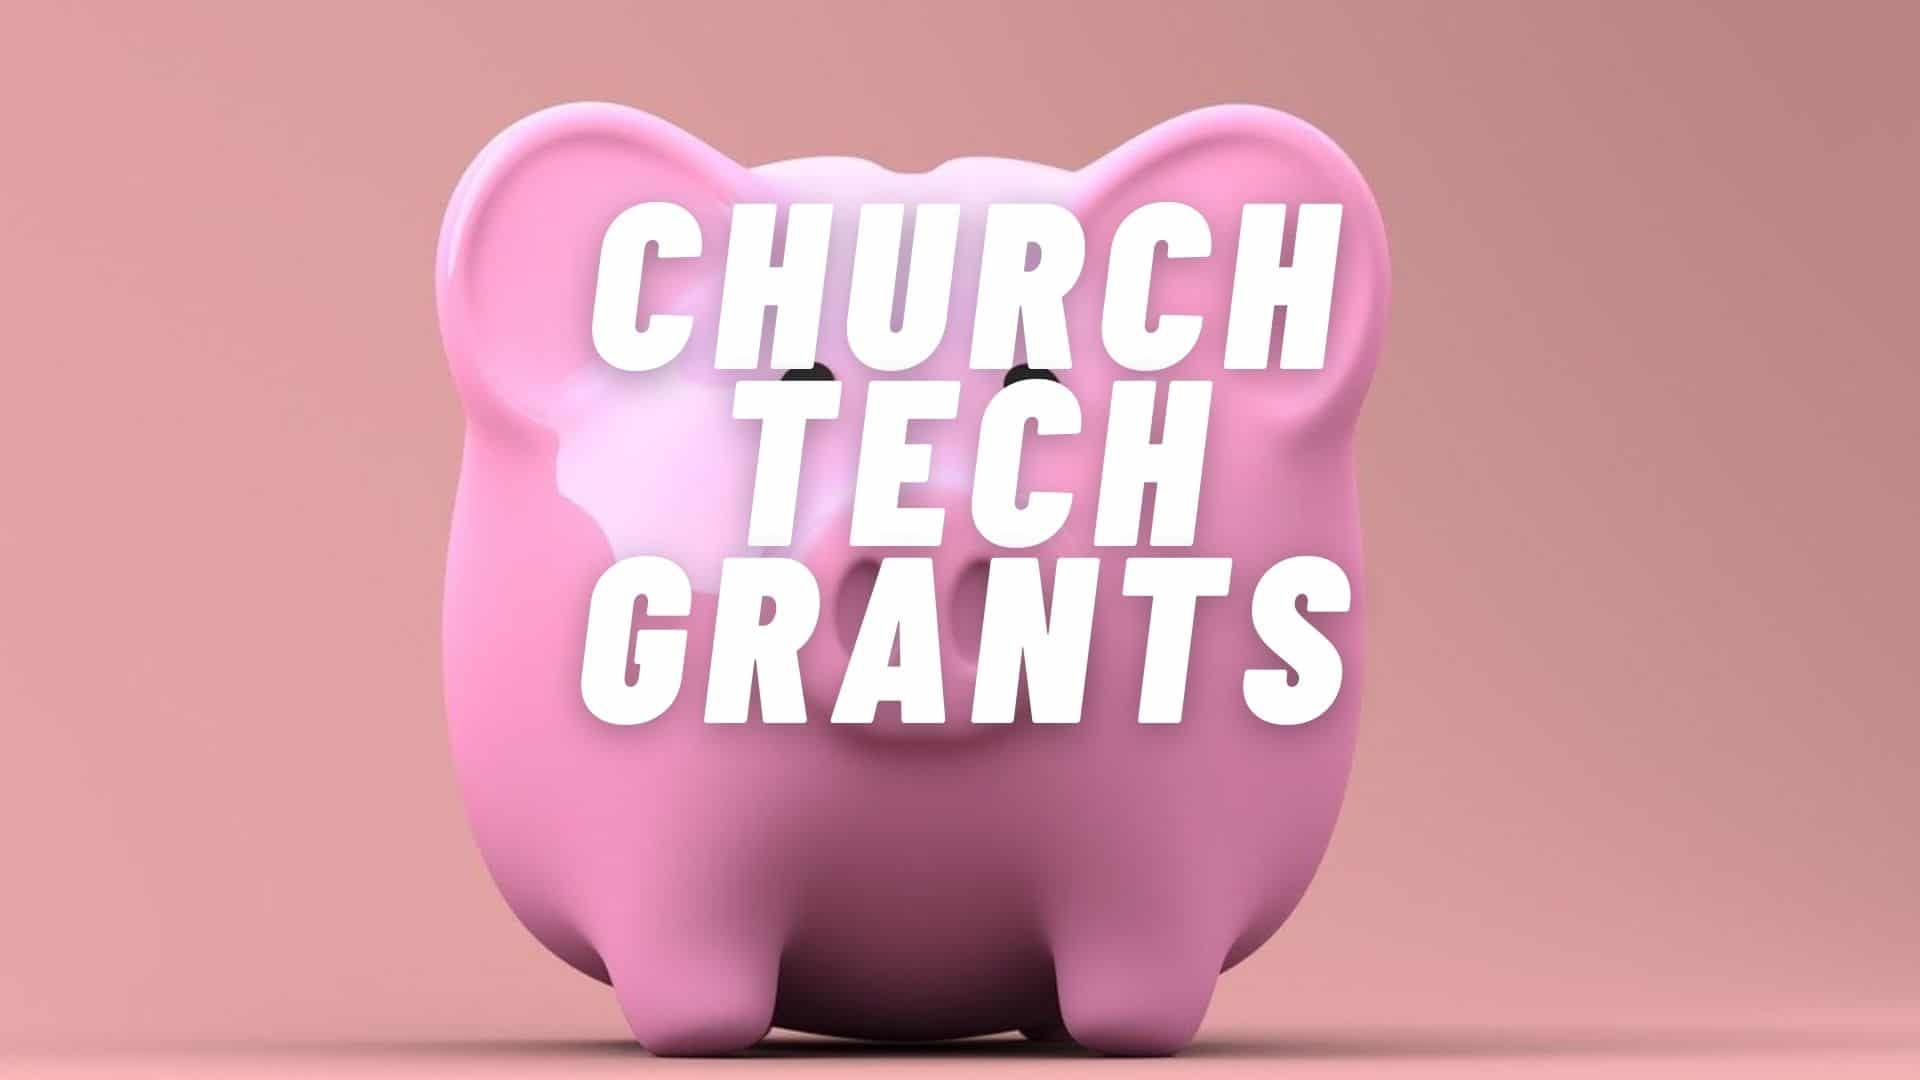 How to Access Church Technology Grants